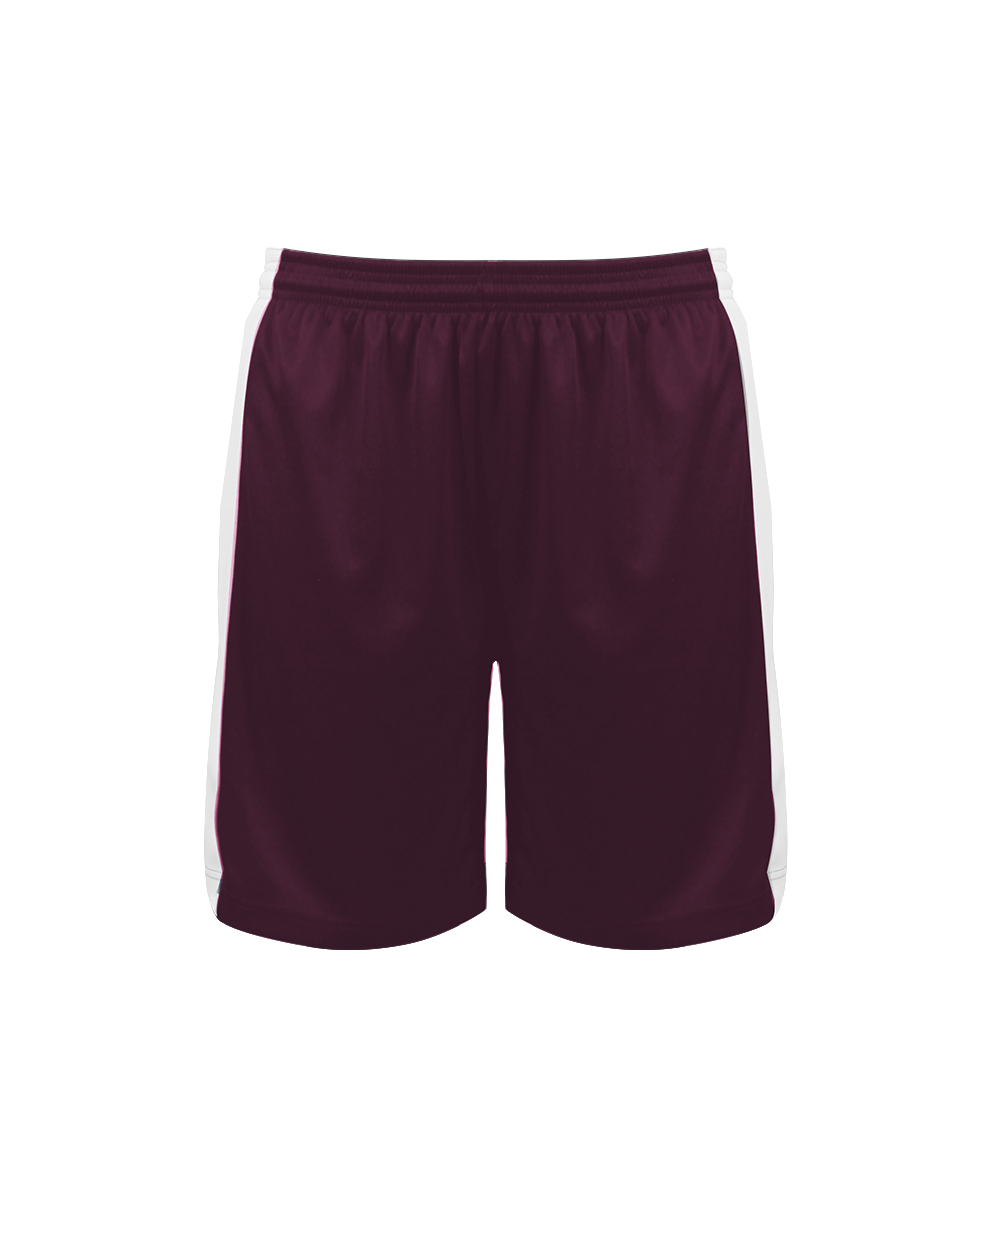 Court Women's Rev. Short - Maroon/White